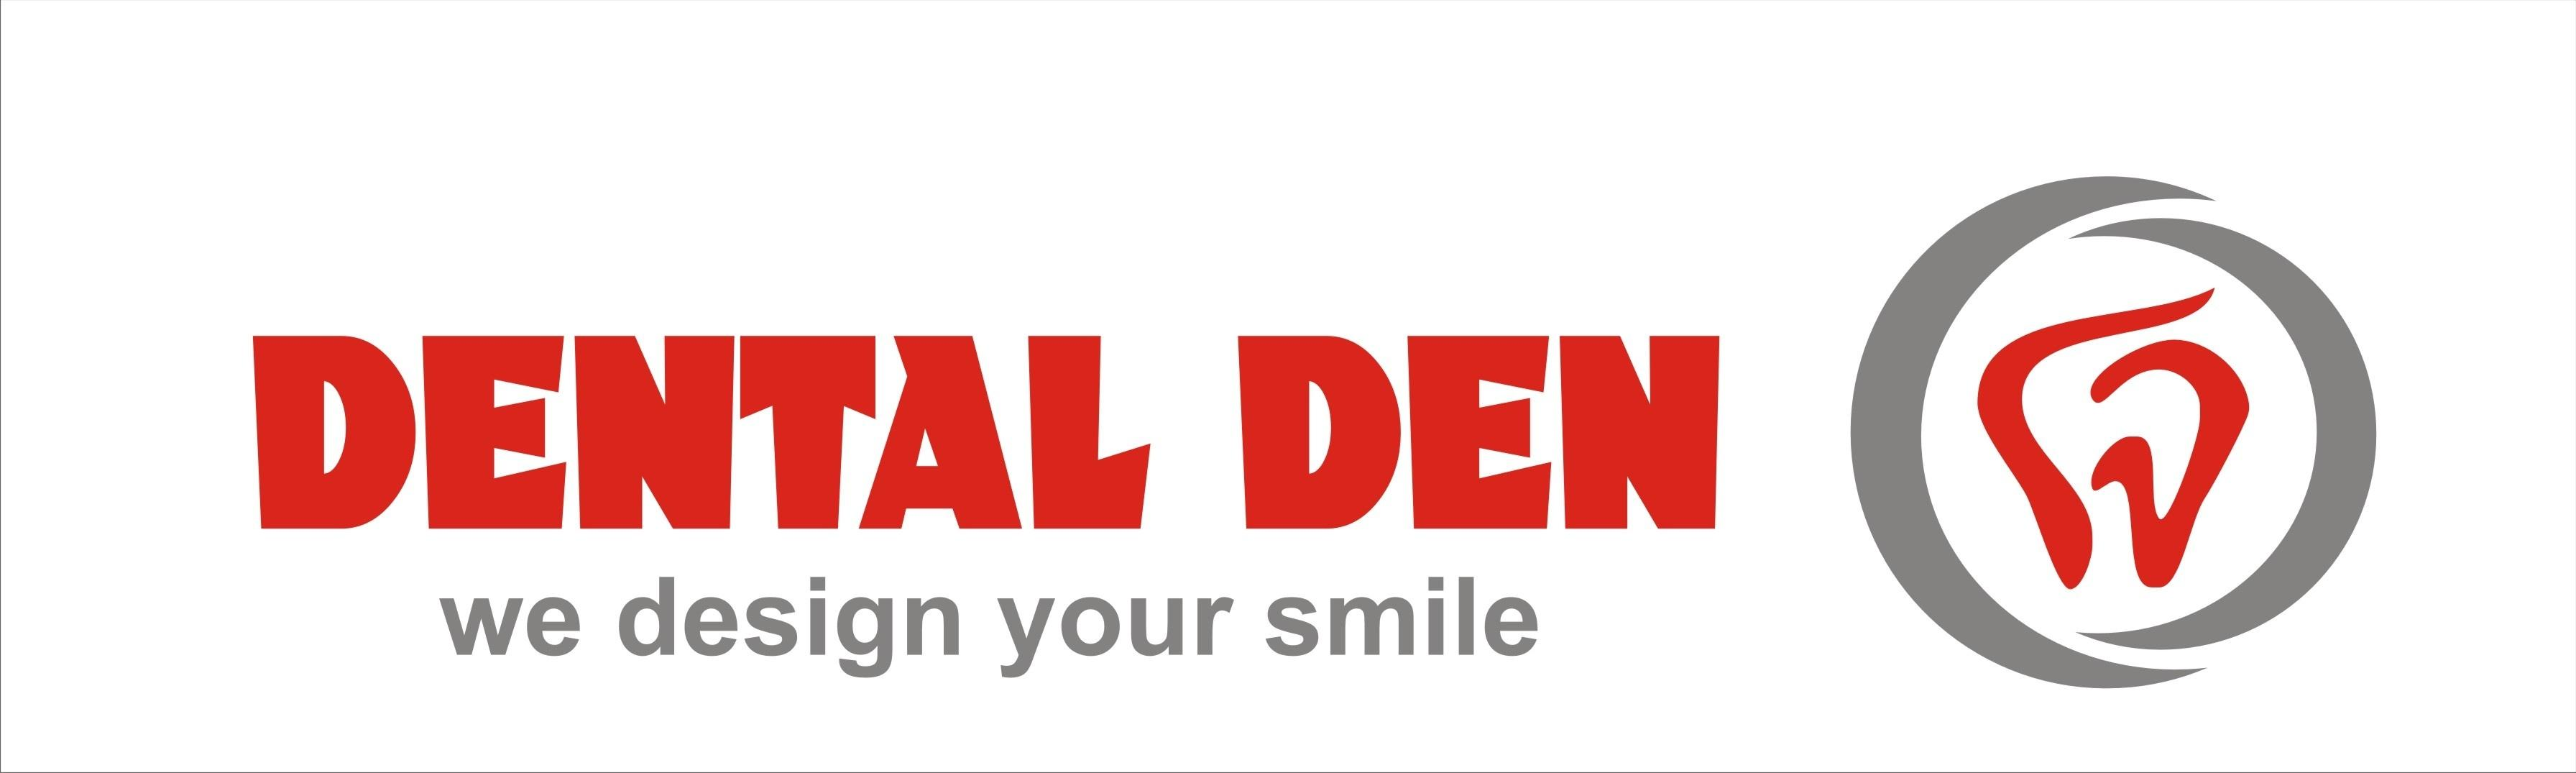 Dental Den